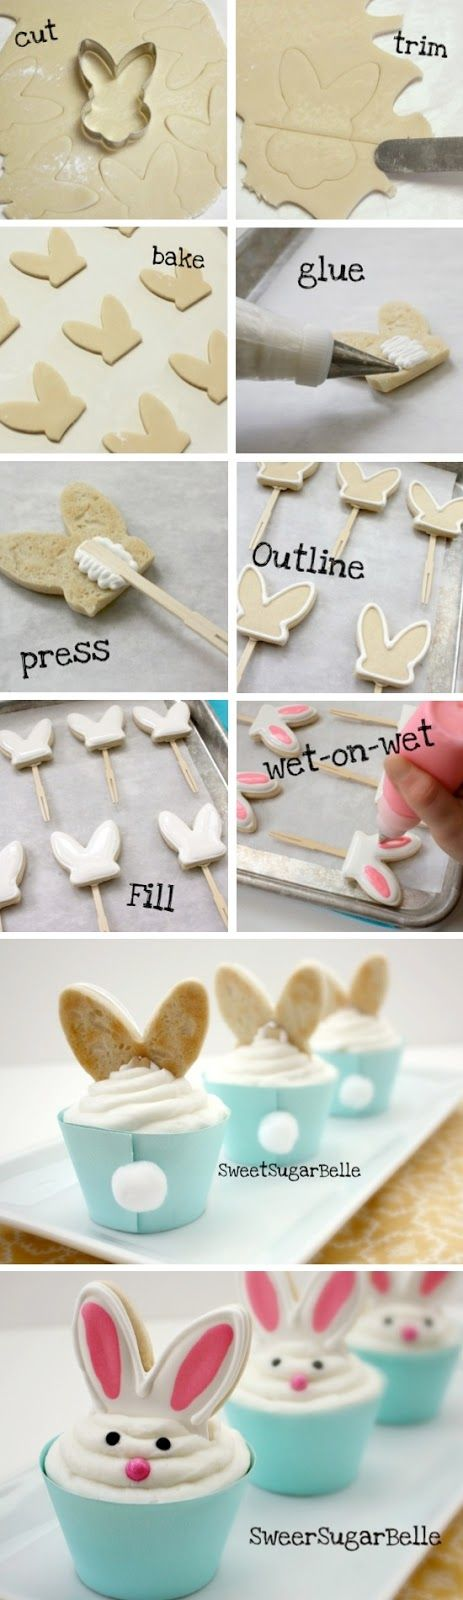 Easter-food idea-Bunny Ear Cupcakes Ideas para comida de Pascuas - Easter food ideas. We ♥ it PanamaFoodies.com